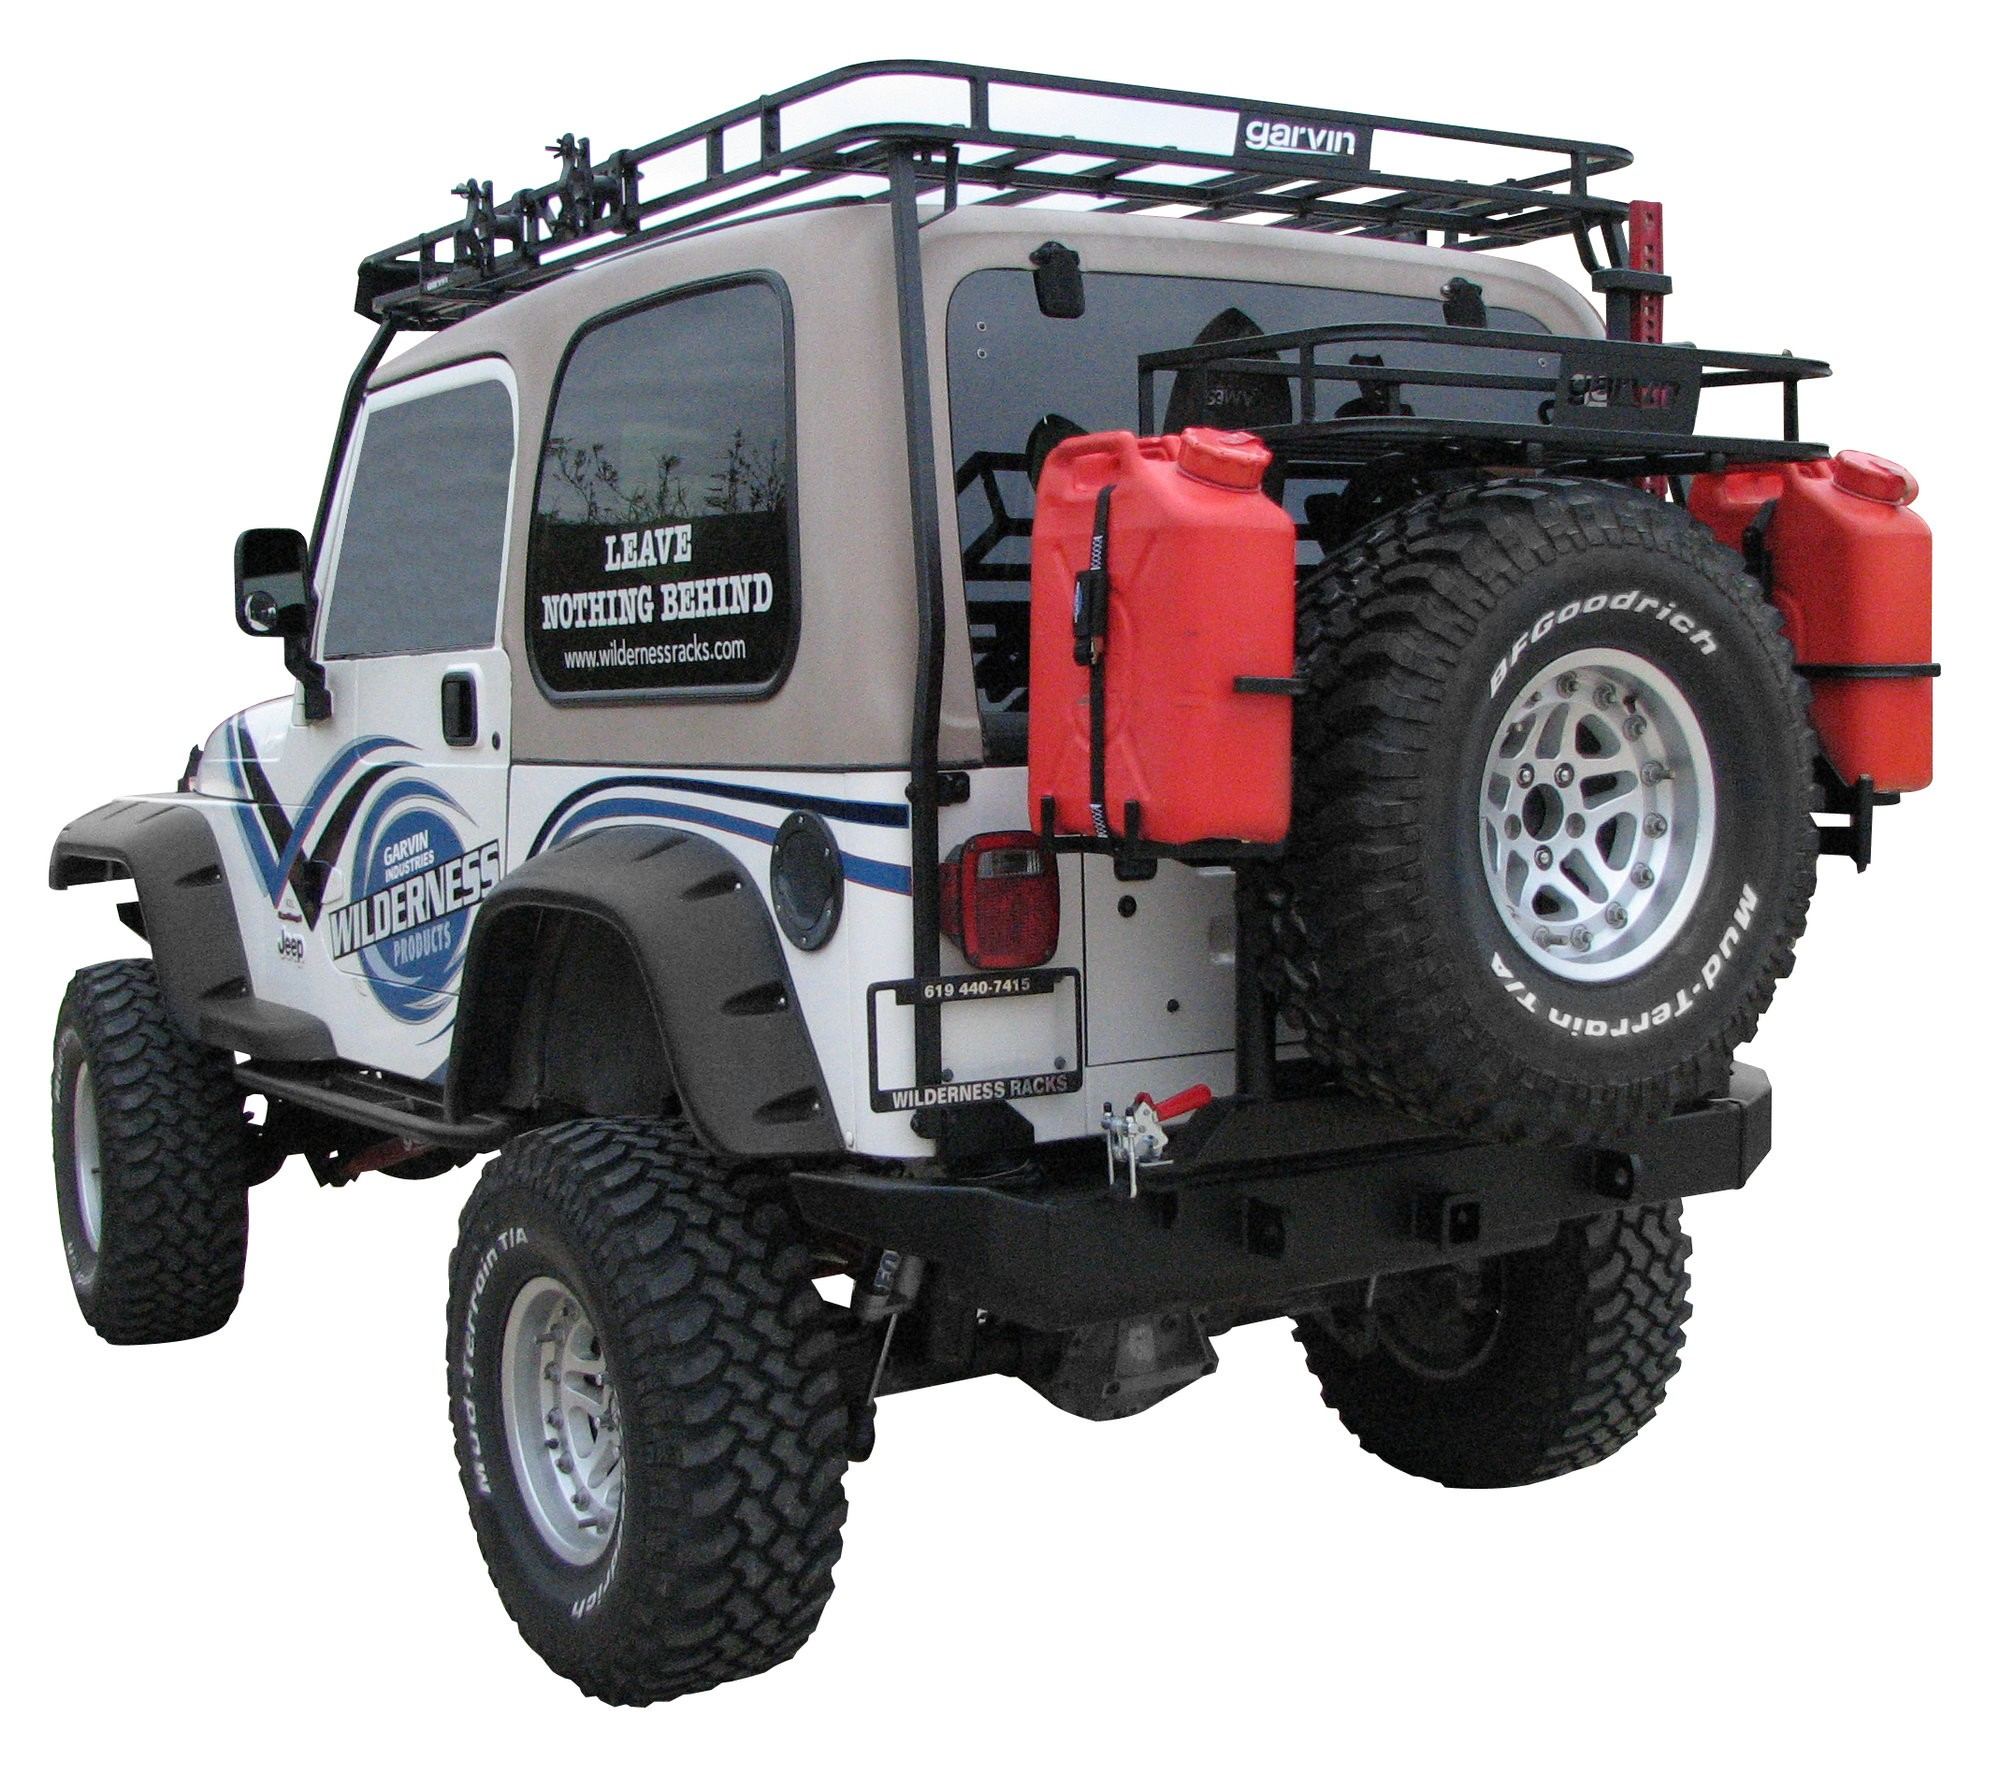 1997 Jeep Wrangler Parts Diagram Garvin G2 Series Rear Bumper with Swing Out Tire Carrier for Of 1997 Jeep Wrangler Parts Diagram